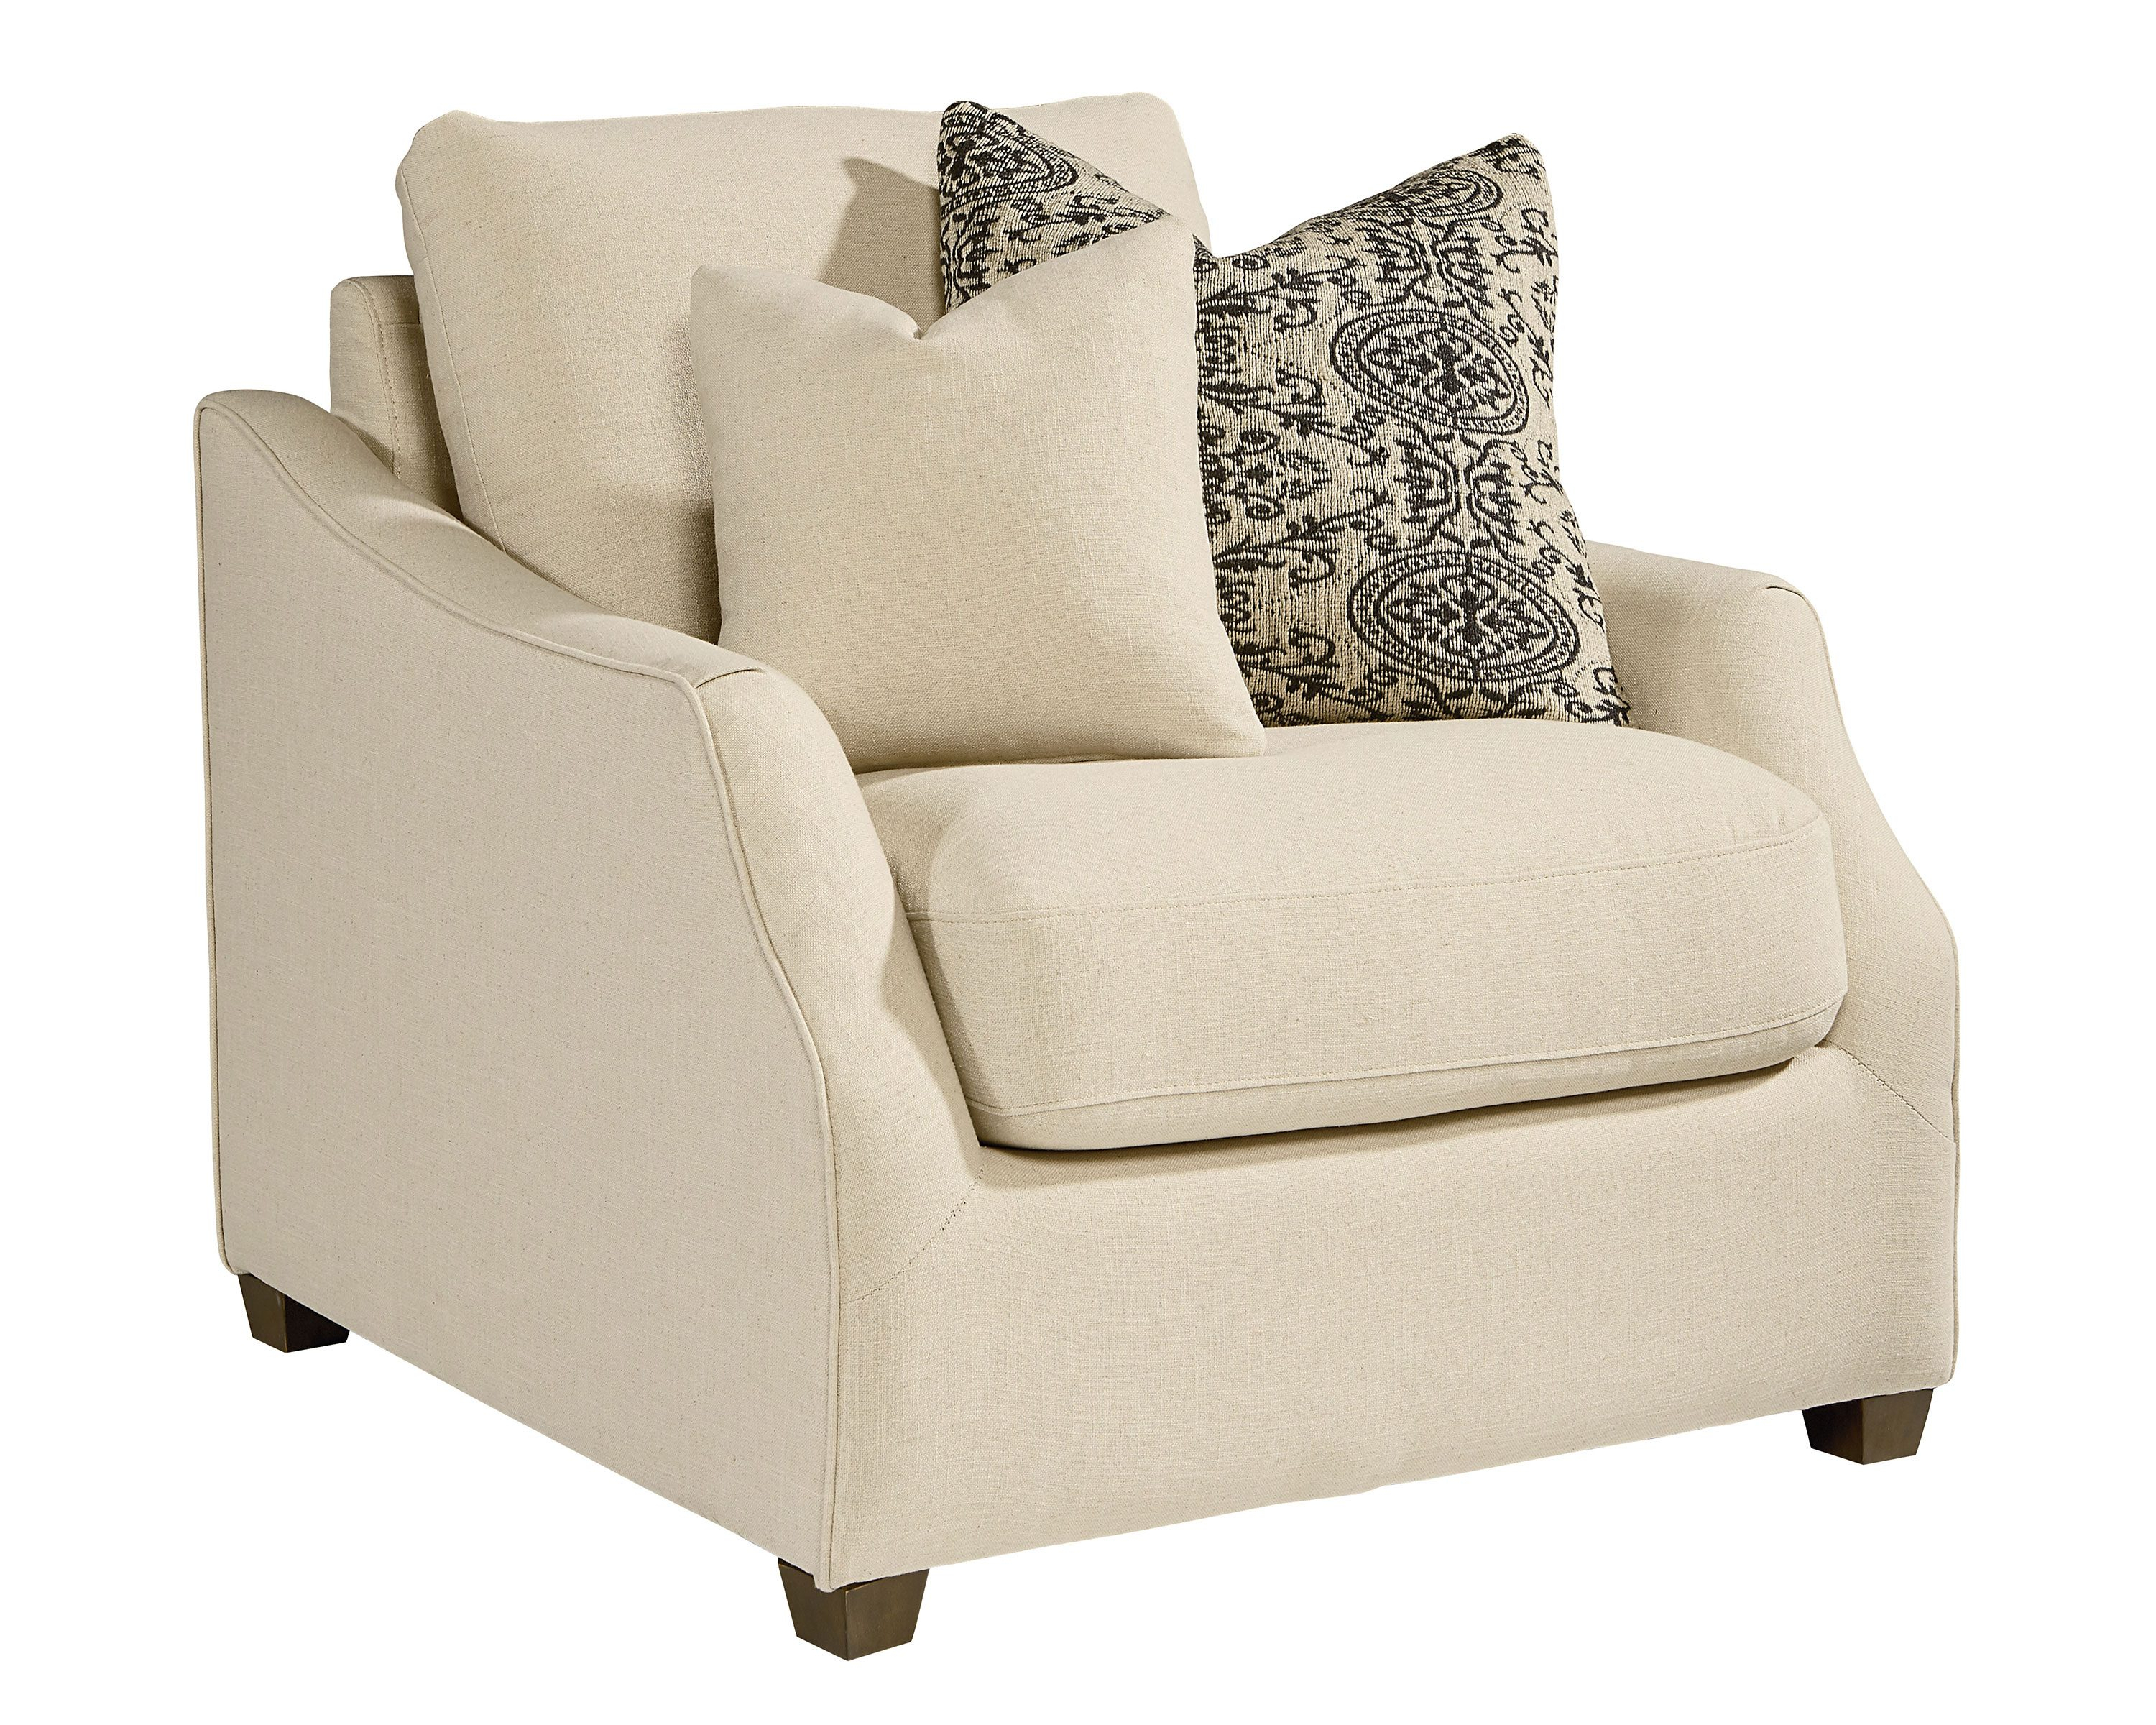 Homestead Chair – Magnolia Home In Magnolia Home Homestead Sofa Chairs By Joanna Gaines (Image 4 of 25)